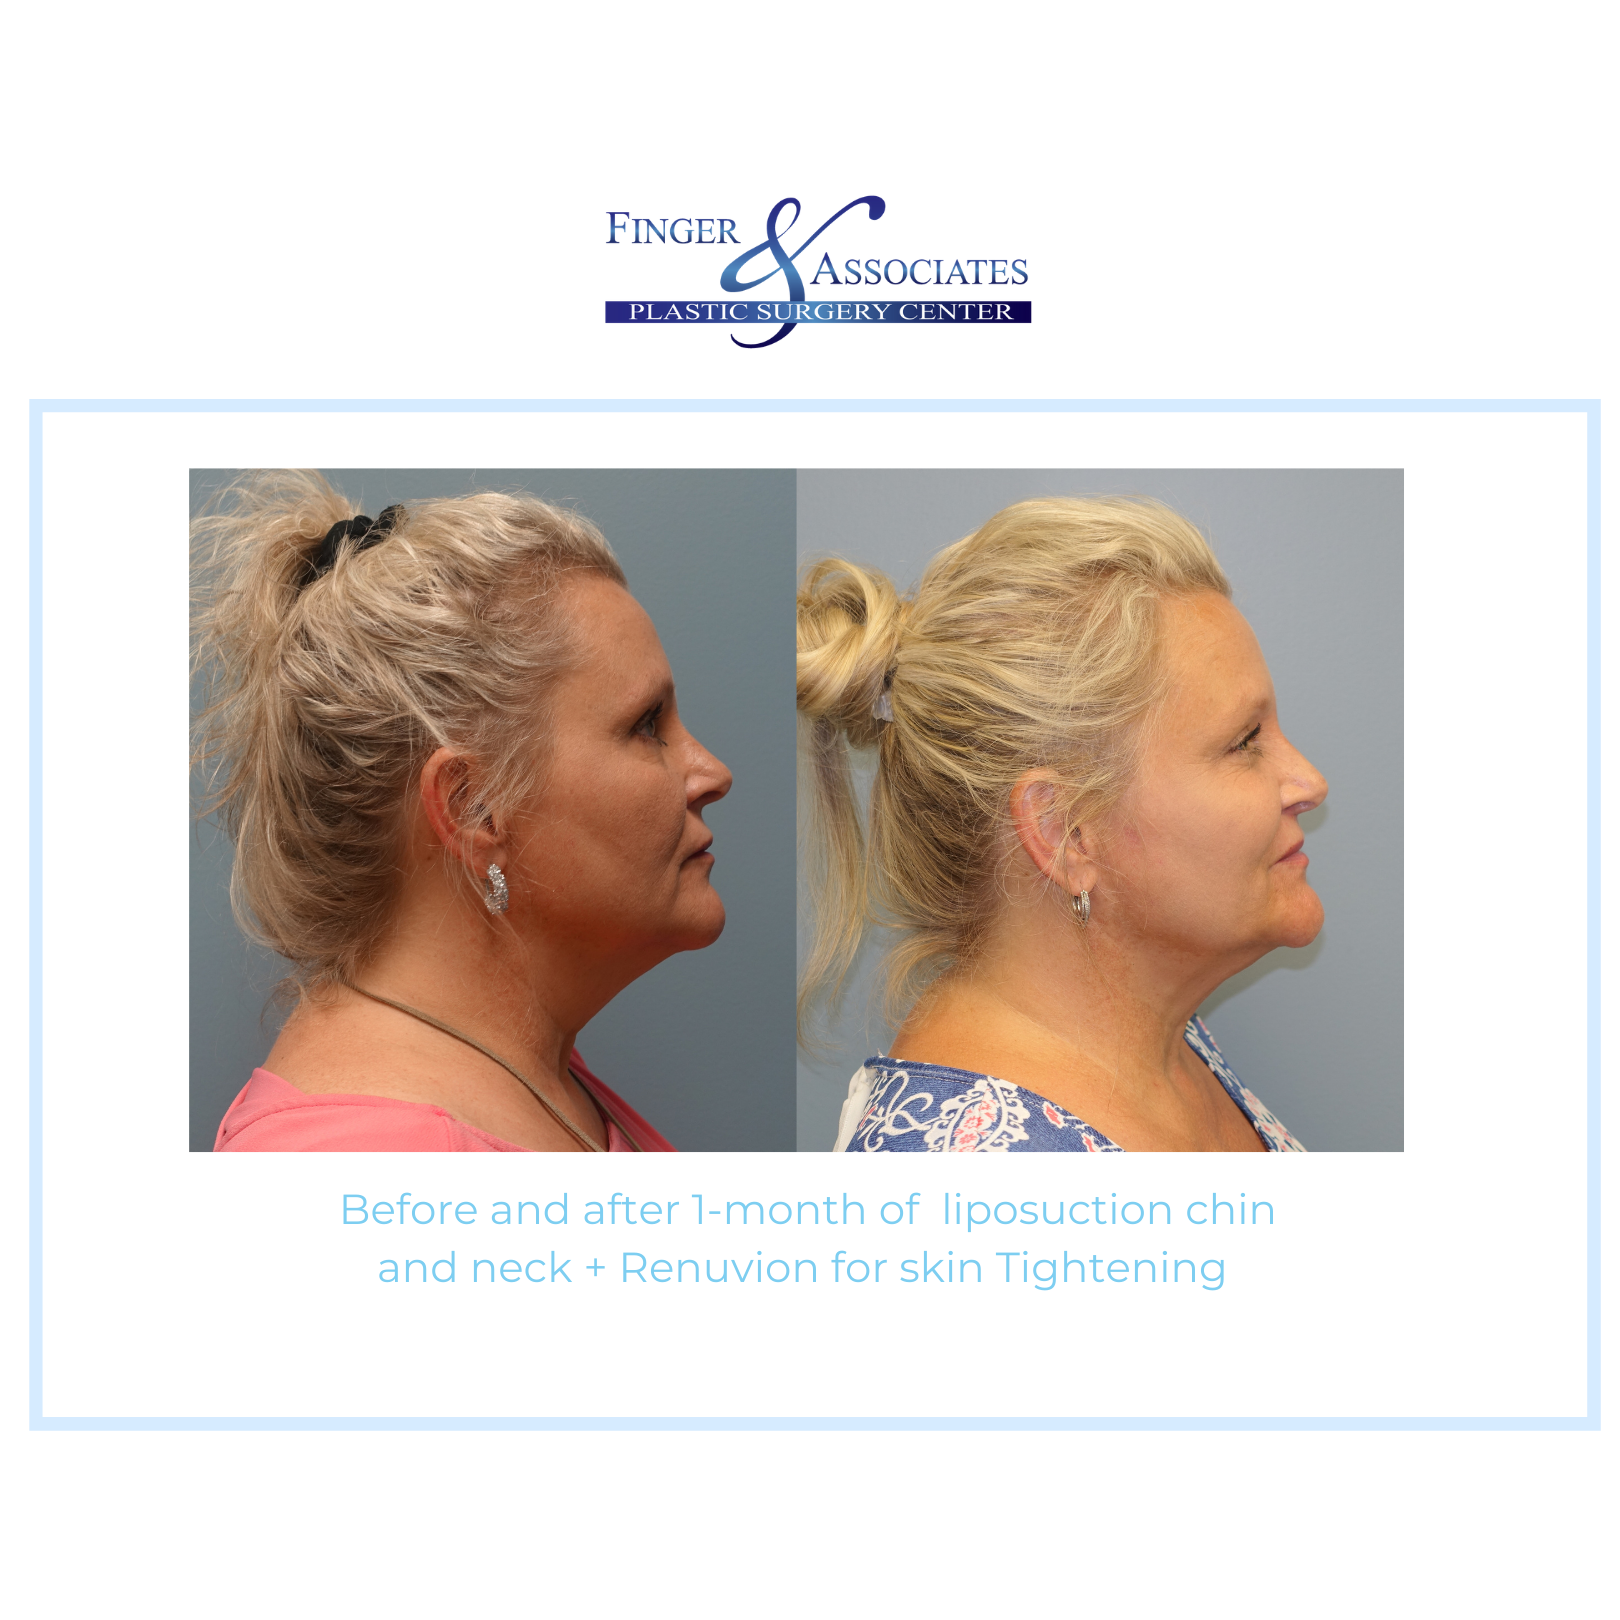 Before and after Liposuction with Renuvion by Dr. E. Ronald Finger